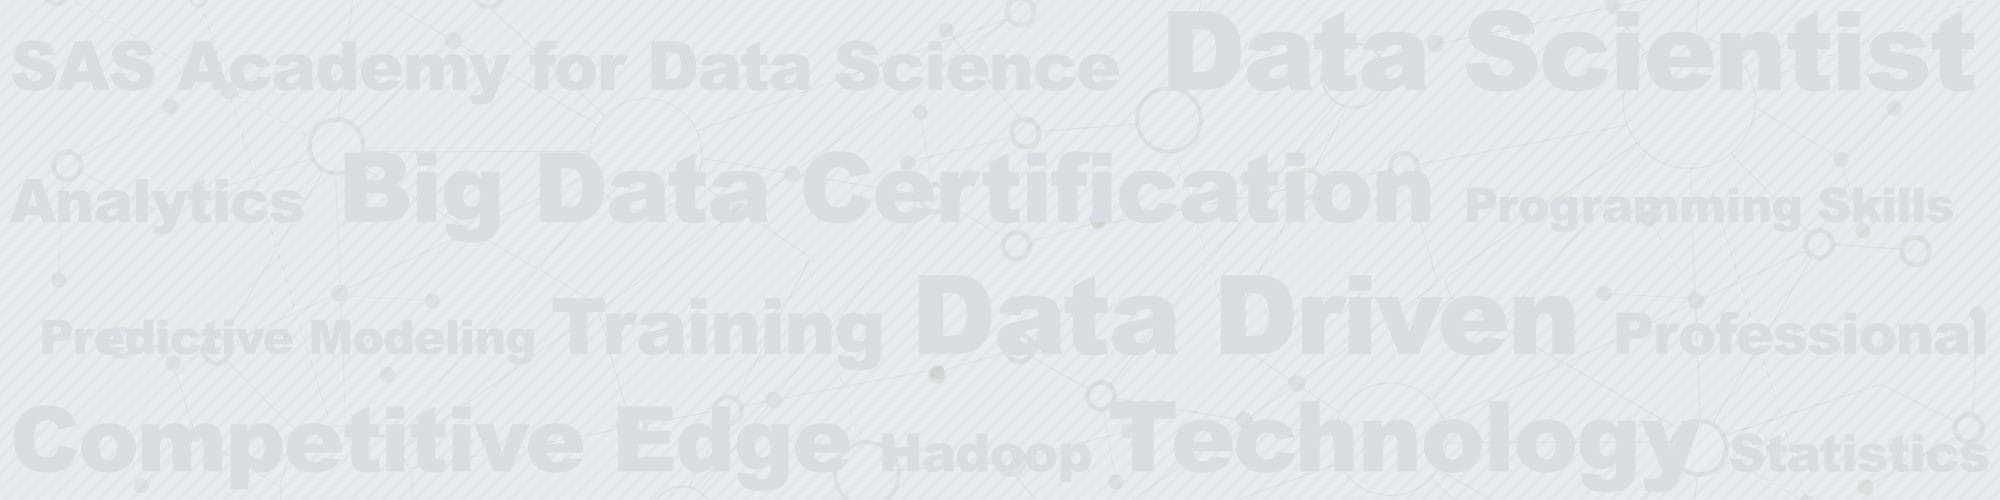 Academy for data science words